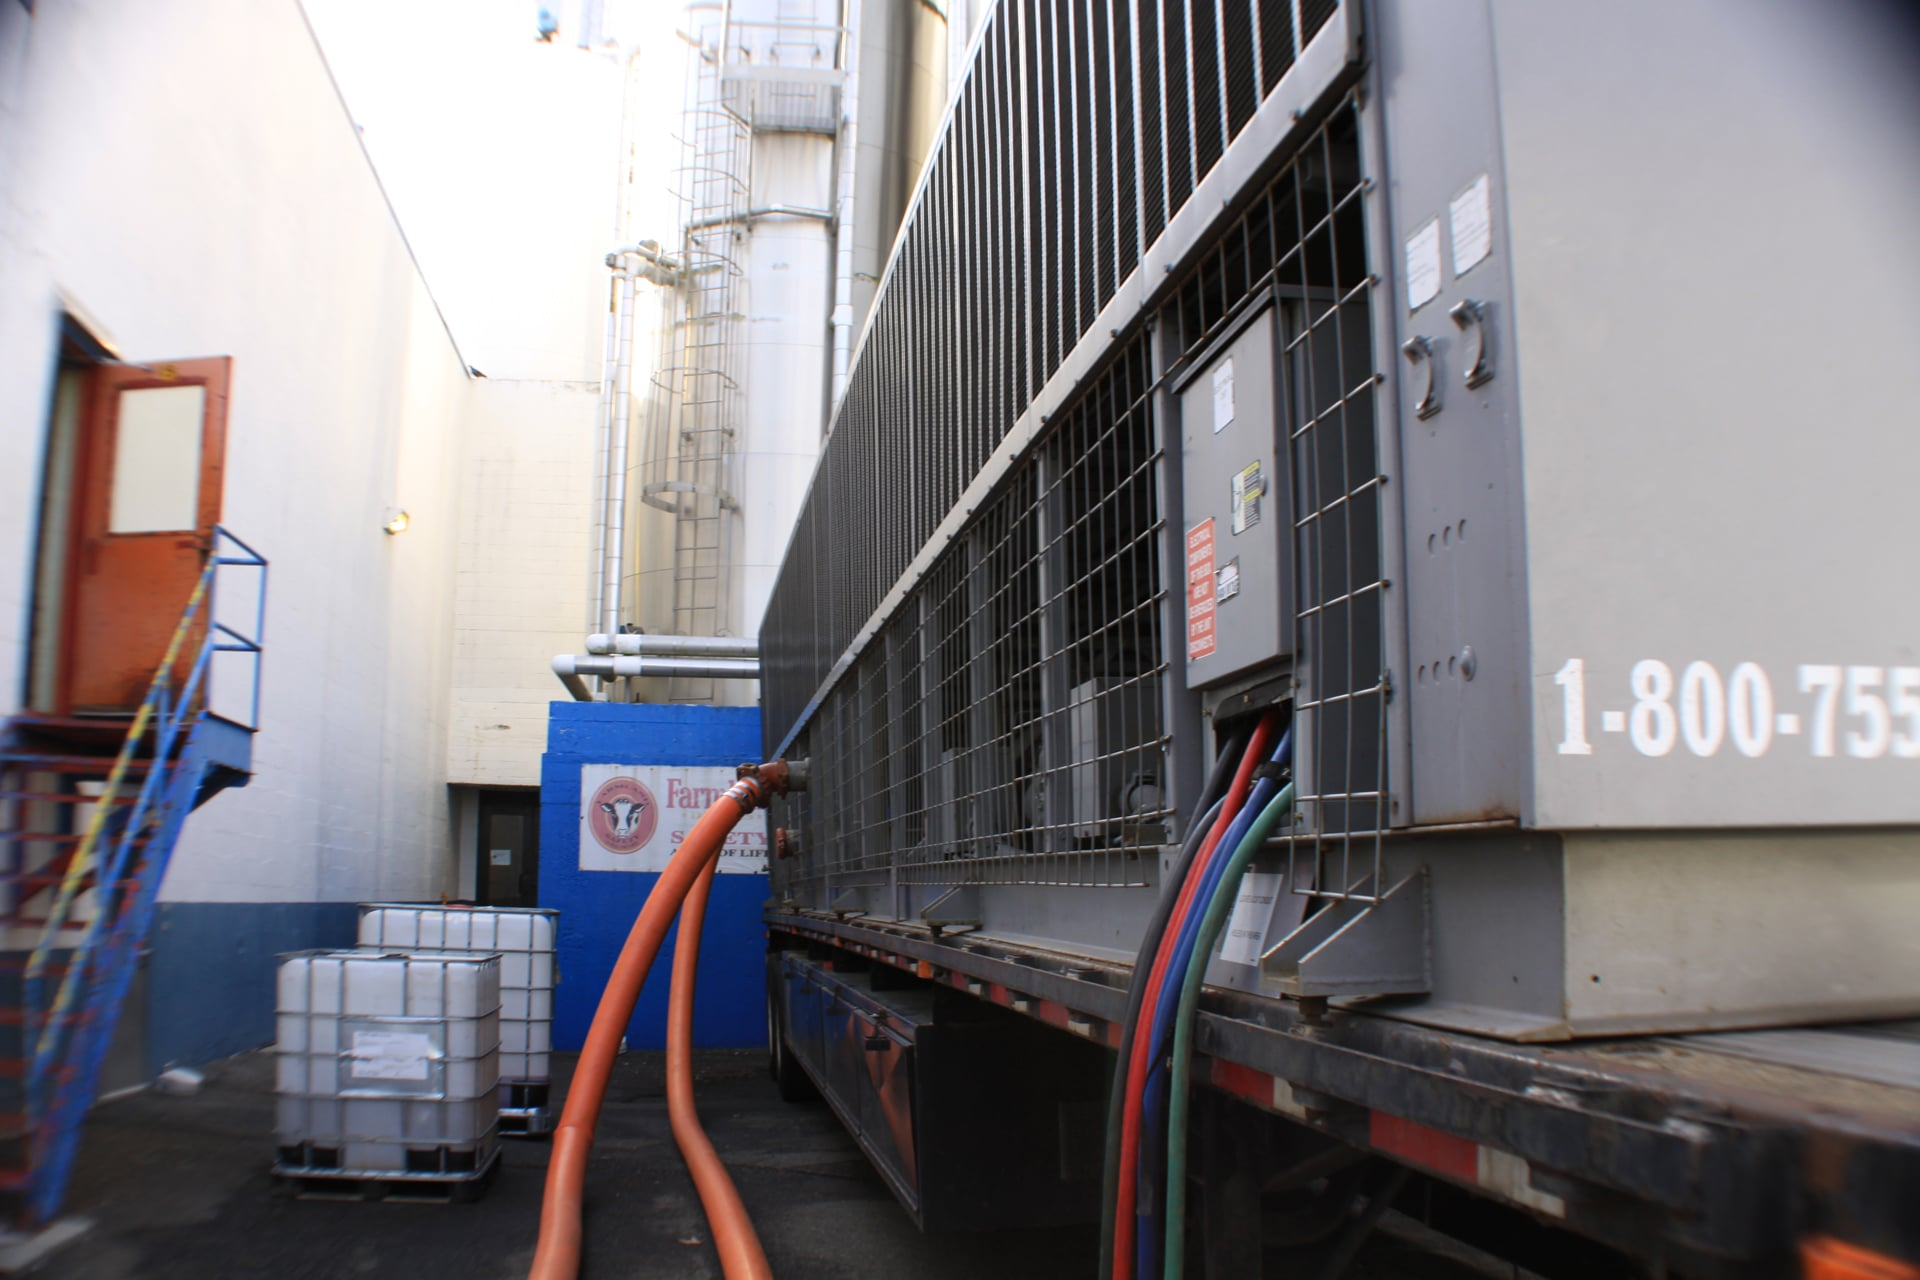 Temporary Chiller Schuylkill County PA, Air Cooled Chiller Rental Schuylkill County PA